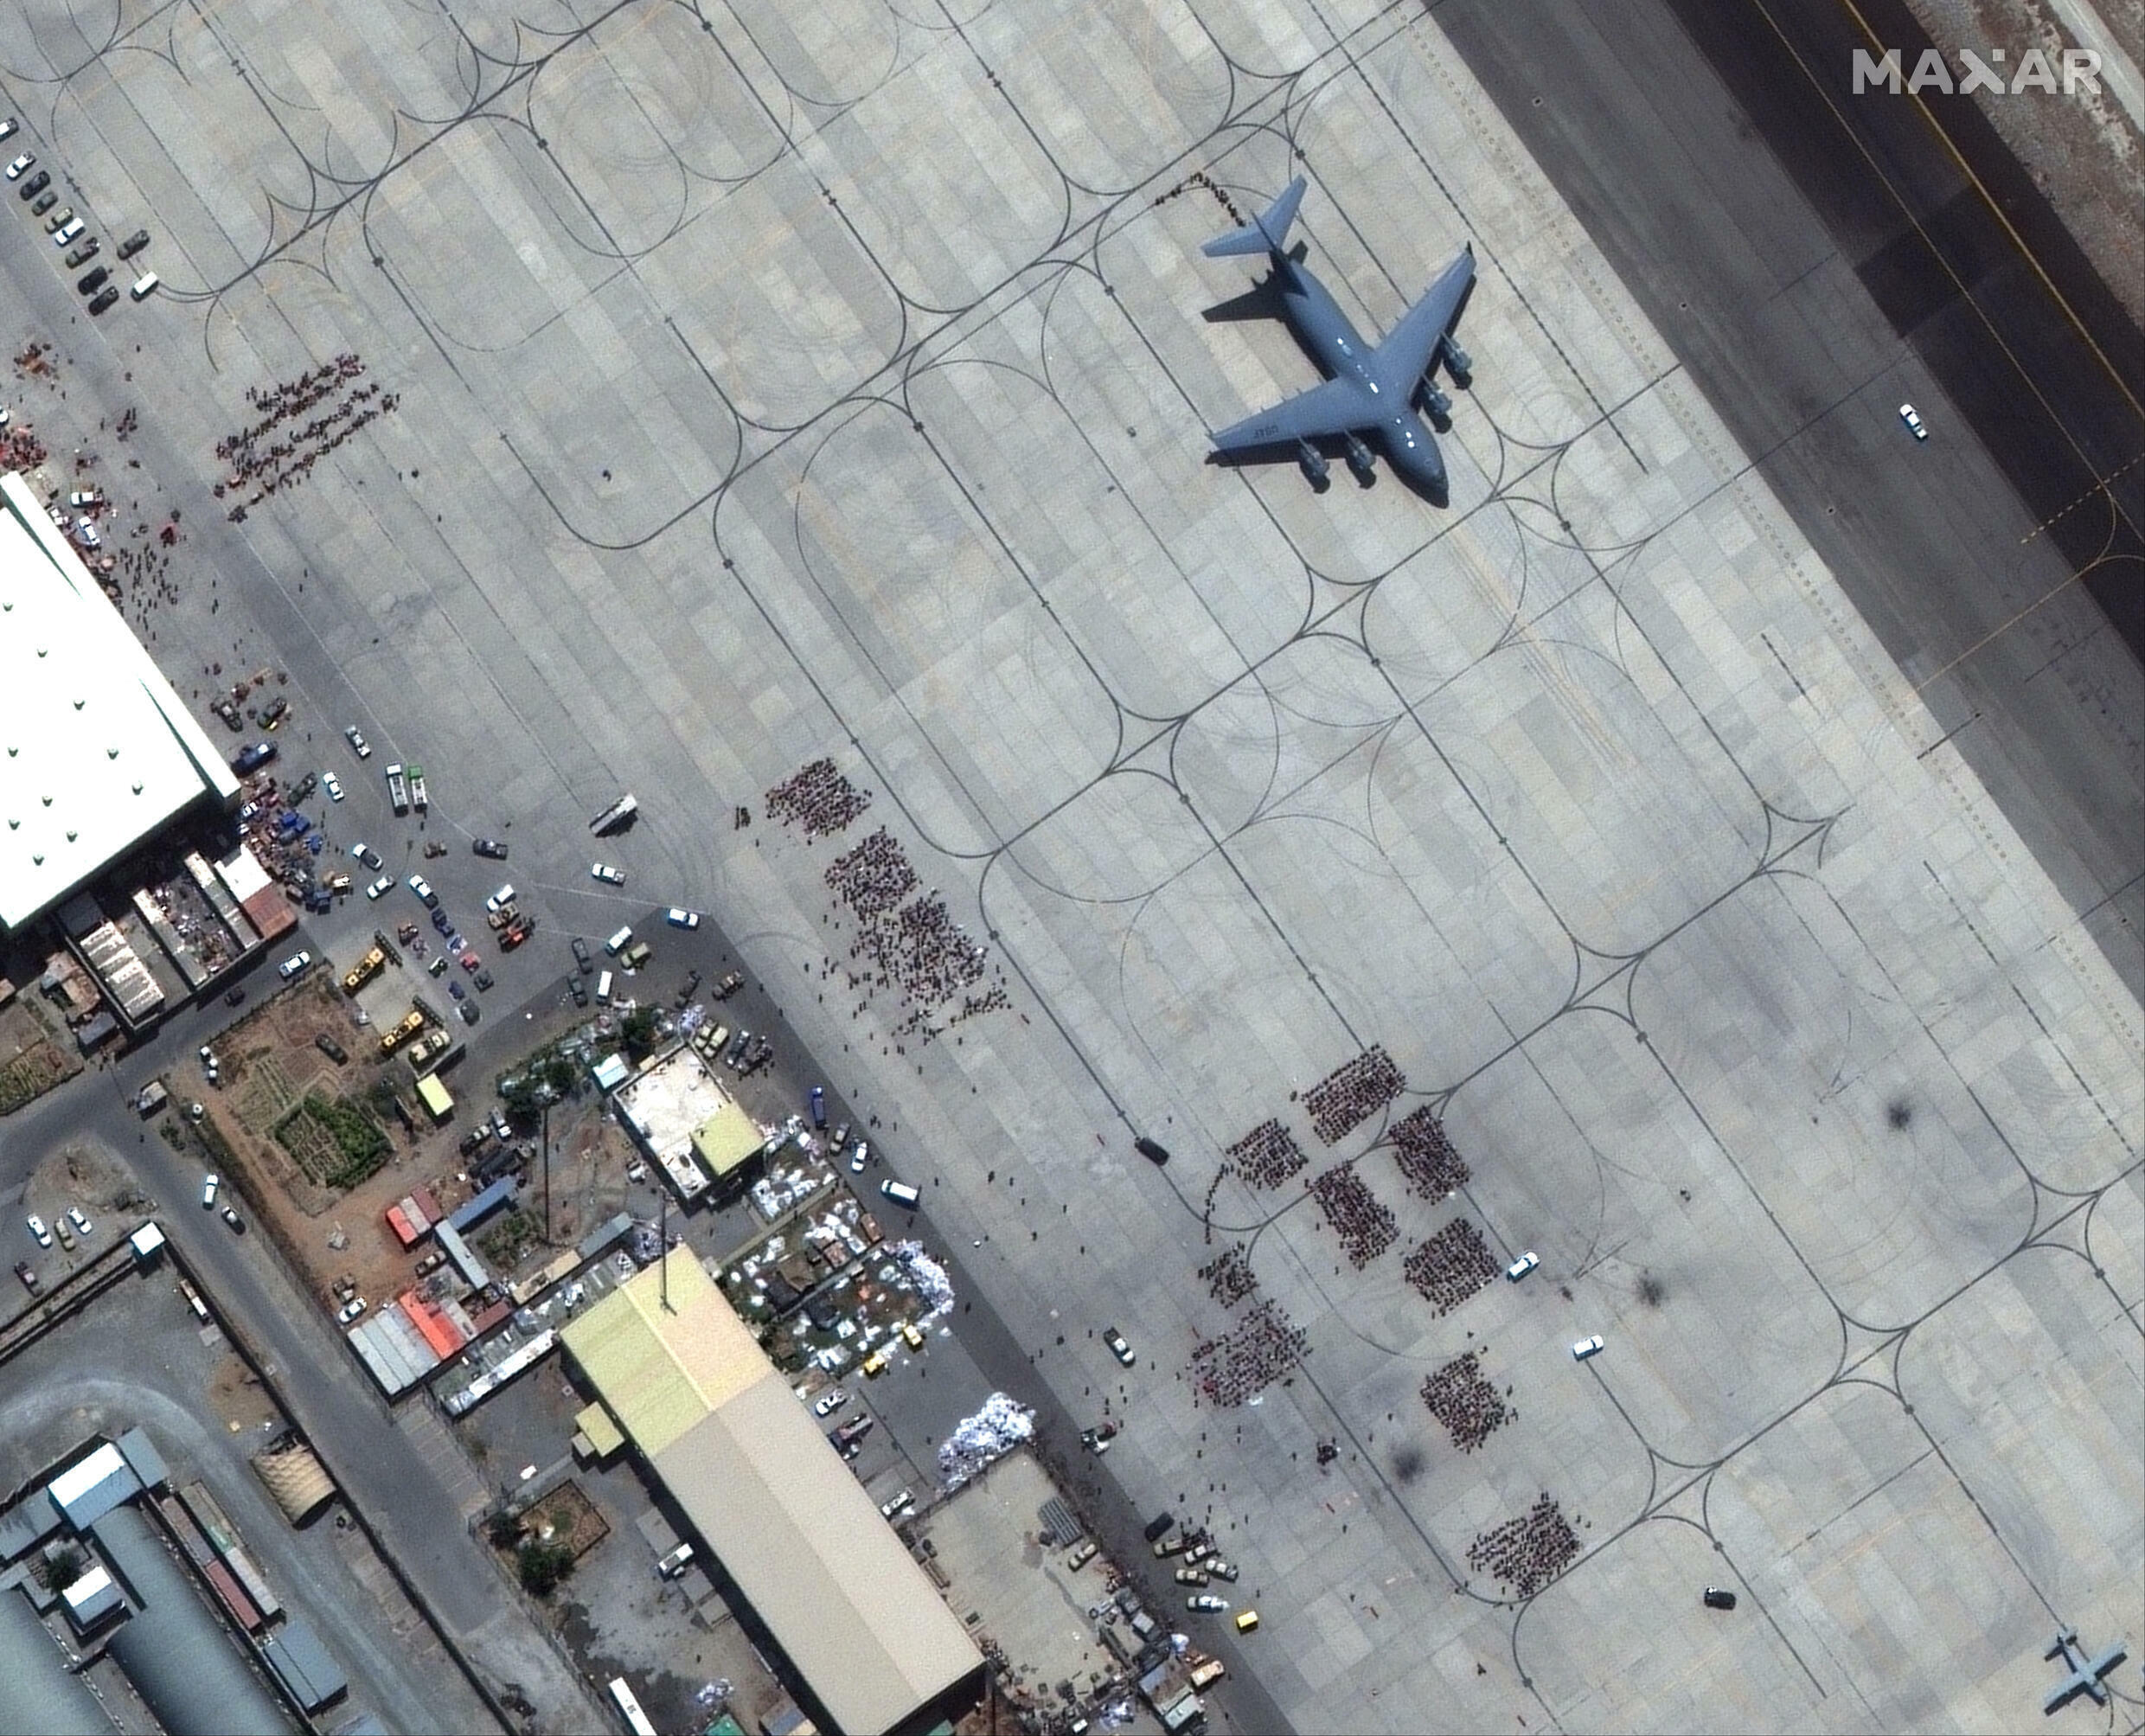 The Hamid Karzai International Airport in Afghanistan (tarmac pictured in this handout satellite image released by Maxar Technologies) is in a bad state, according to US officials